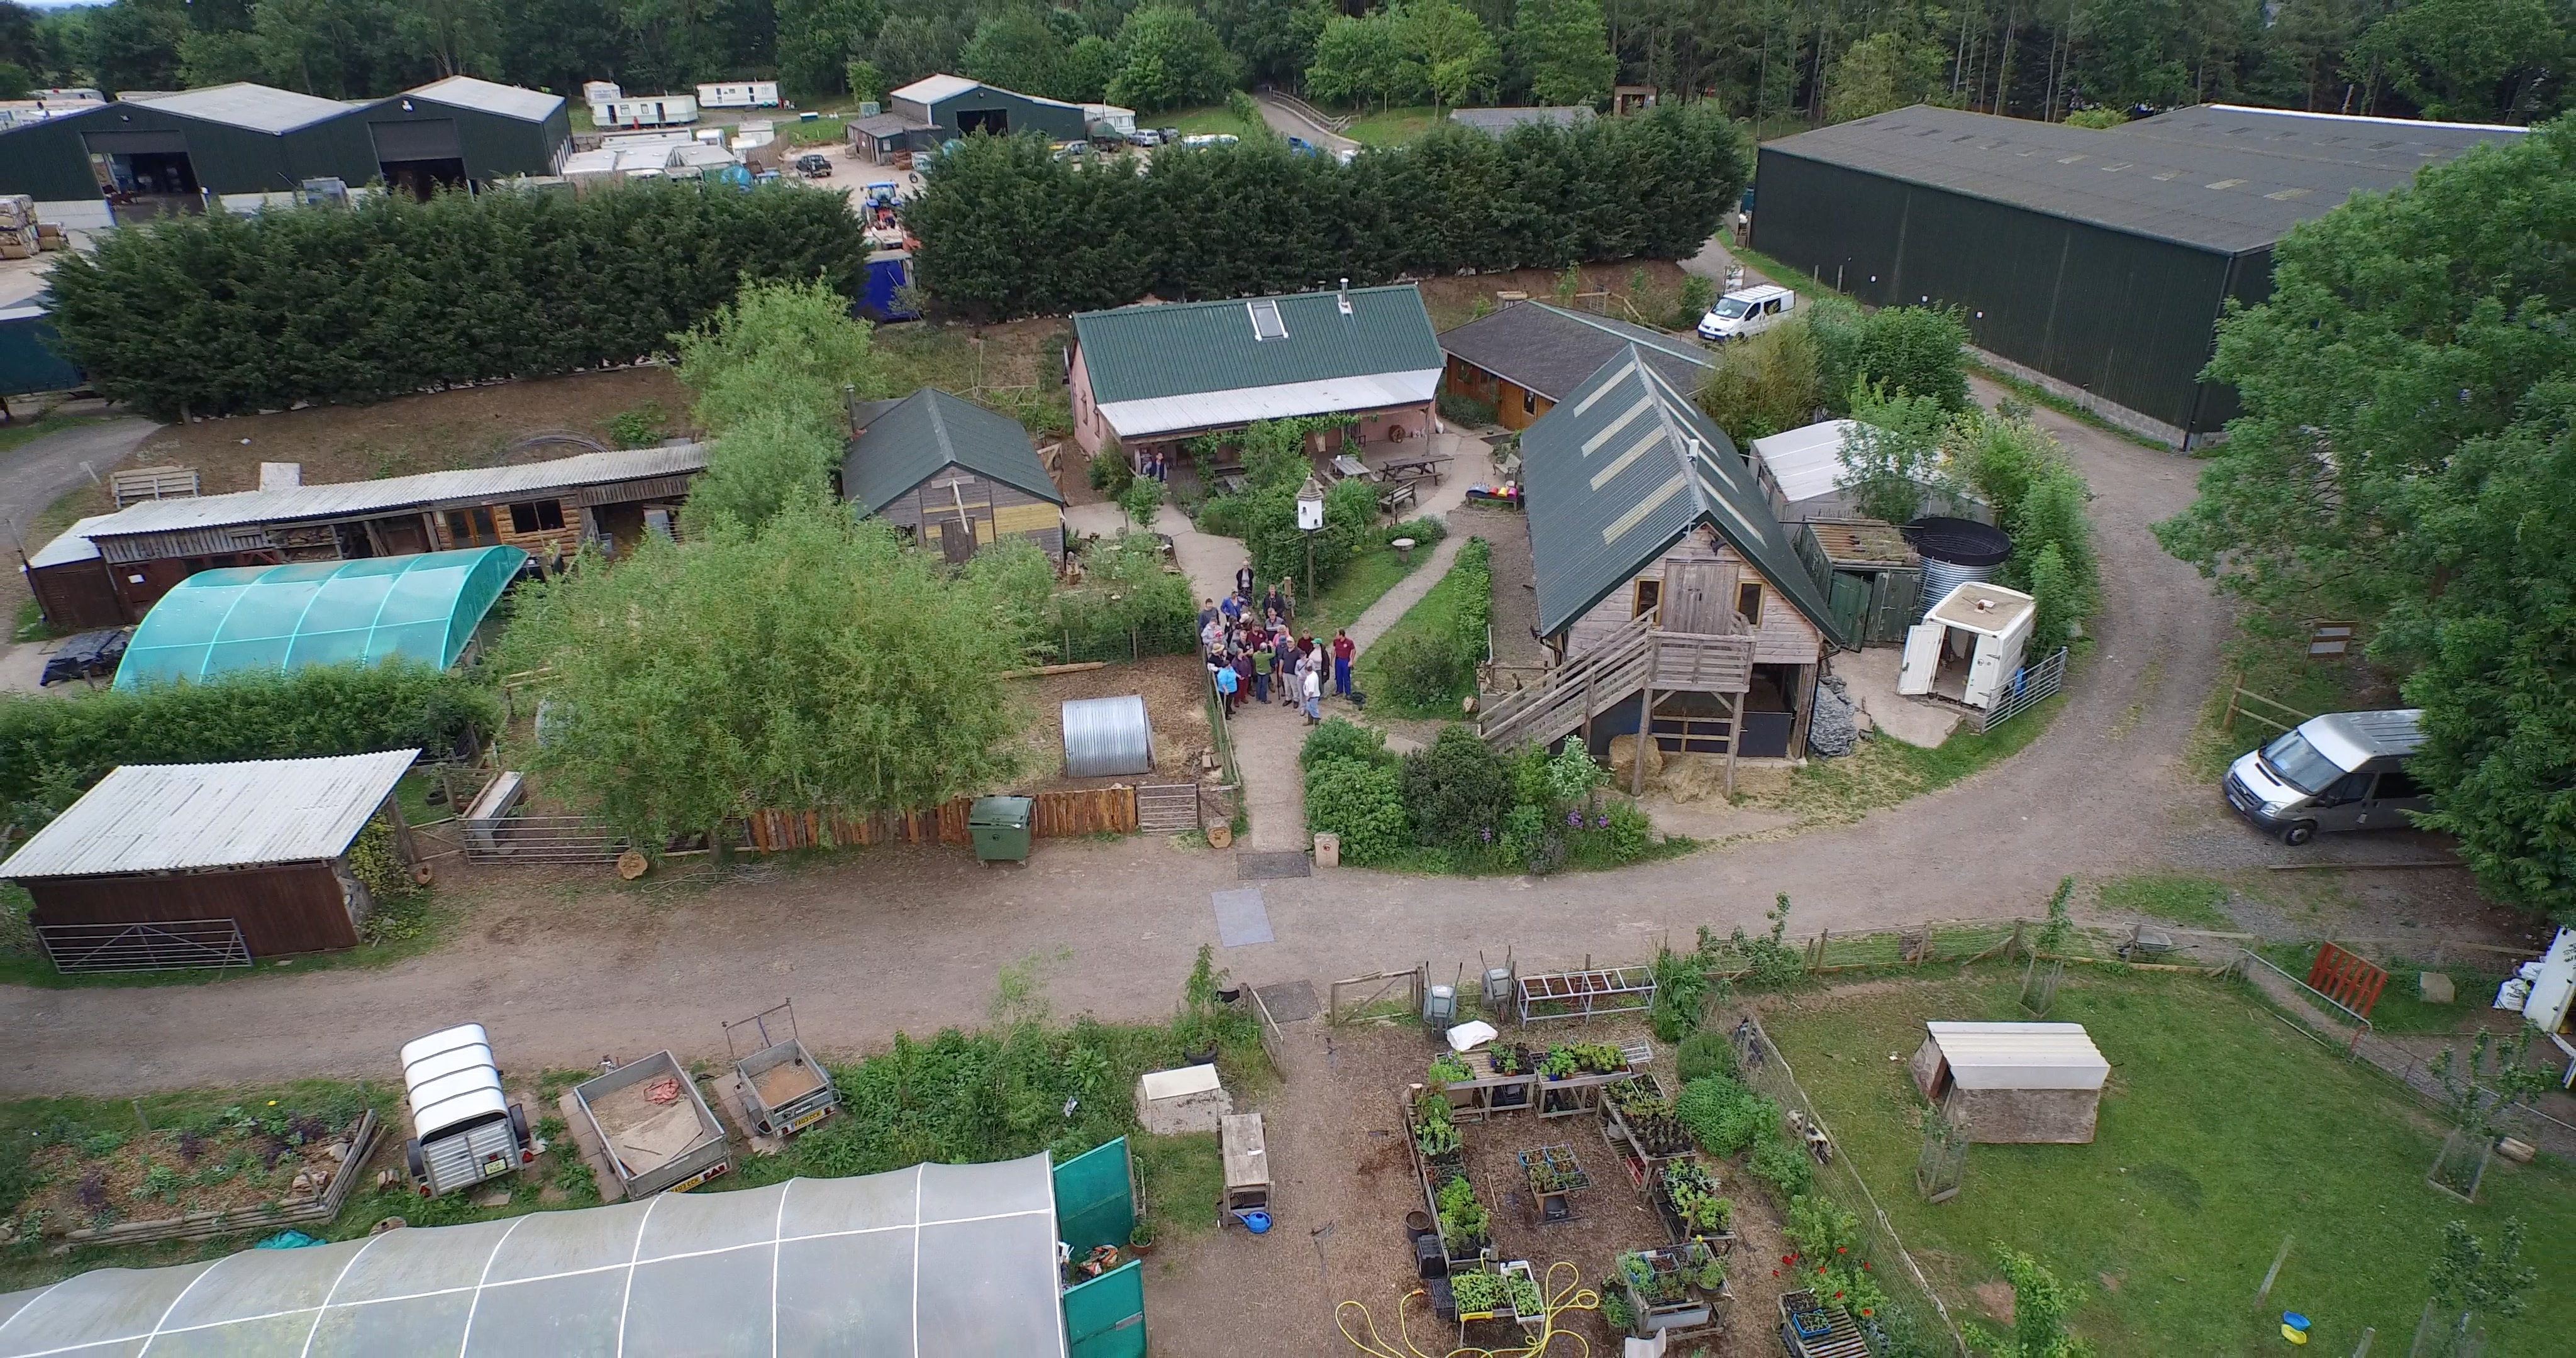 Drone filming in Worcestershire